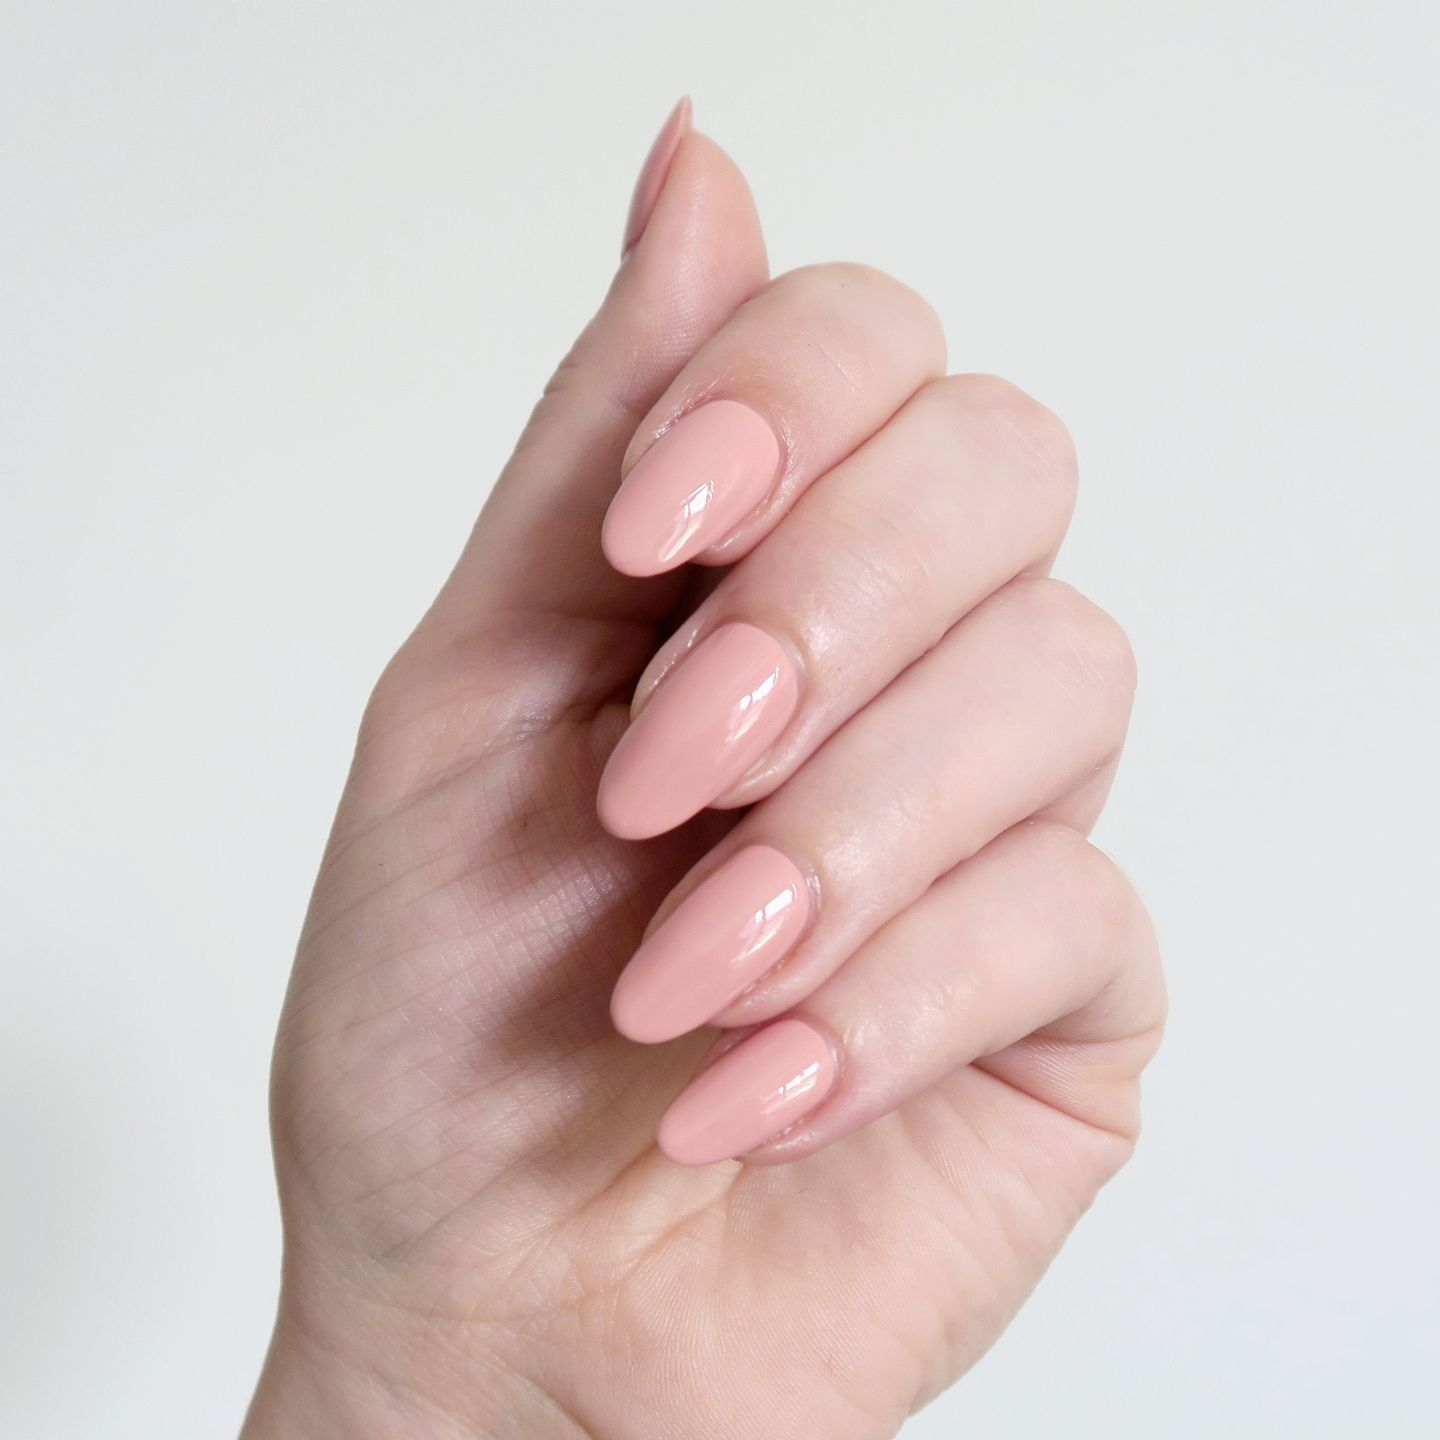 Repin and click to see my review of the new Morgan Taylor Color Of Petals collection. Morgan Taylor 'Young Wild & Freesia' - a soft peach creme nail polish inspiration. Spring manicure inspiration. #talontedlex